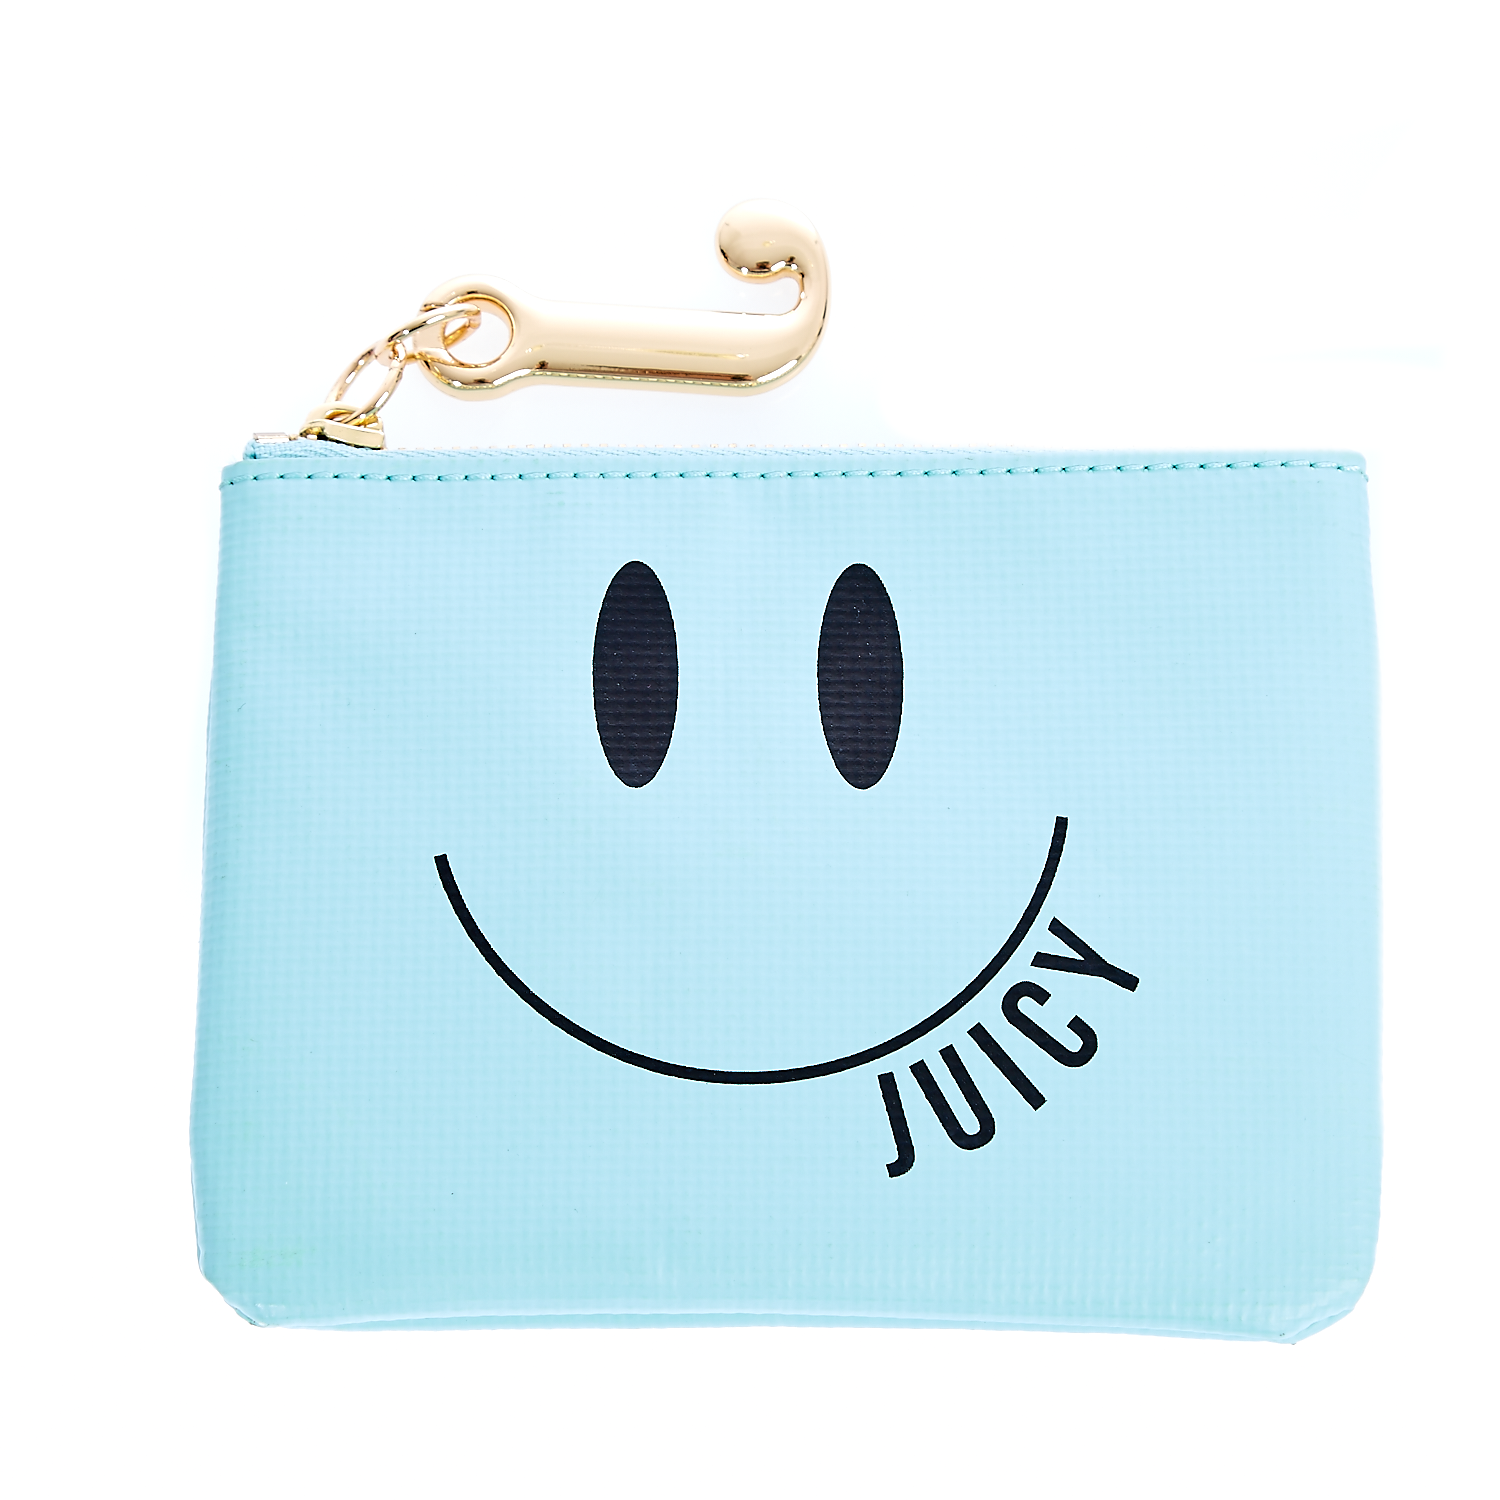 JUICY COUTURE – Πορτοφόλι-τσαντάκι Juicy Couture μπλε 1441467.0-00T2